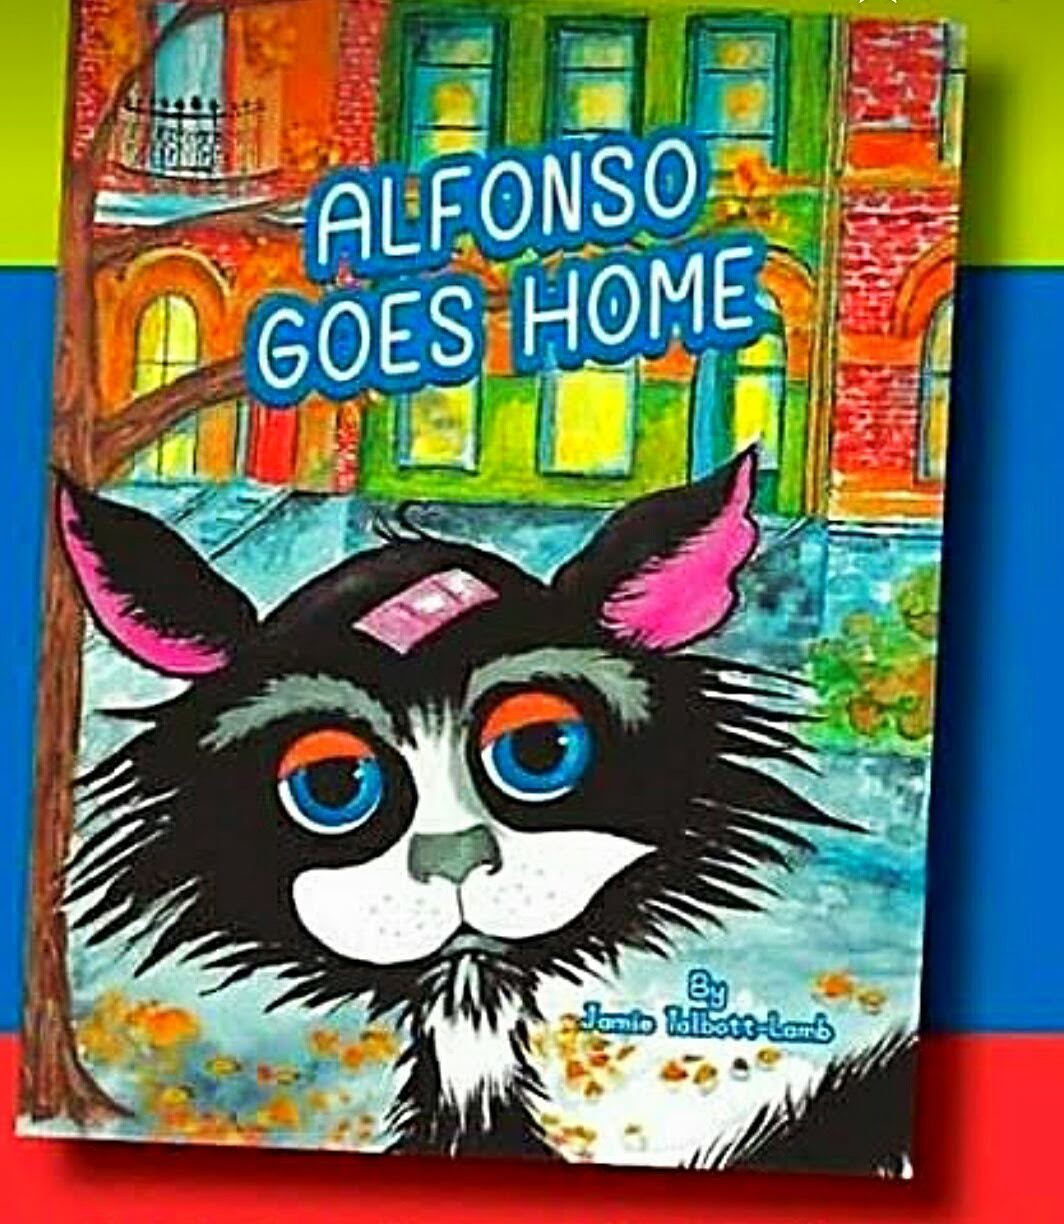 'Alfonso Goes Home' by Des Moines Author